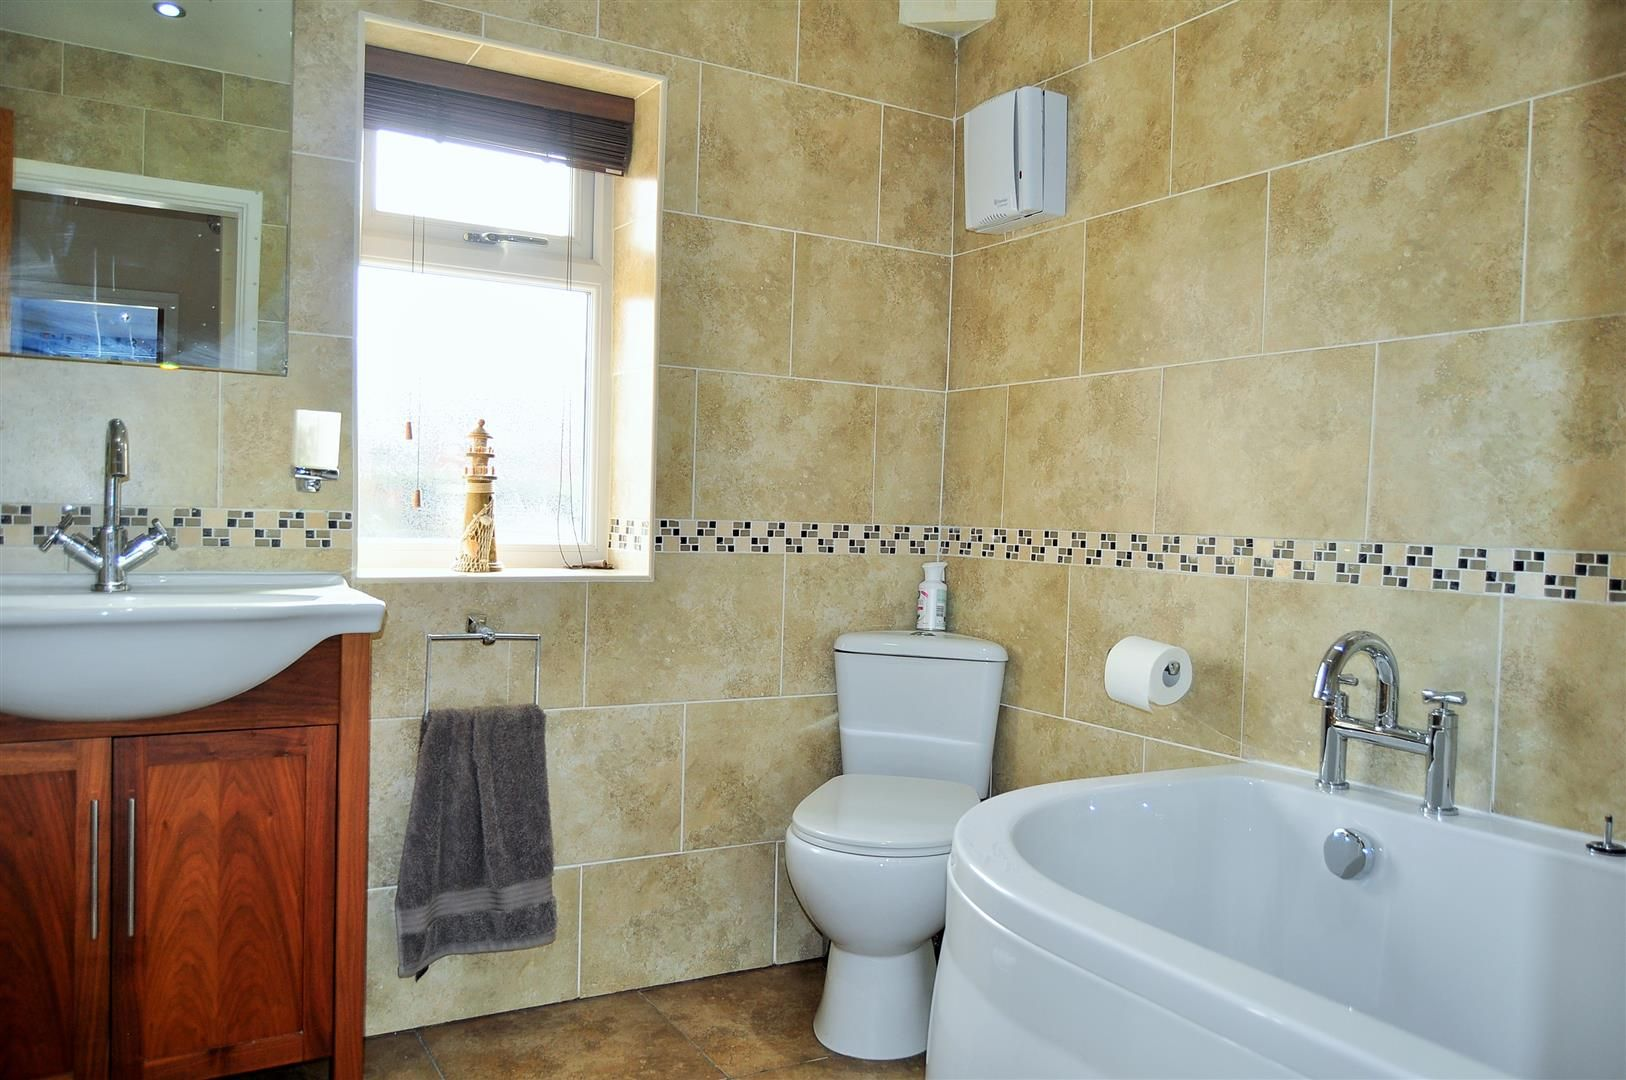 4 bed semi-detached for sale 19